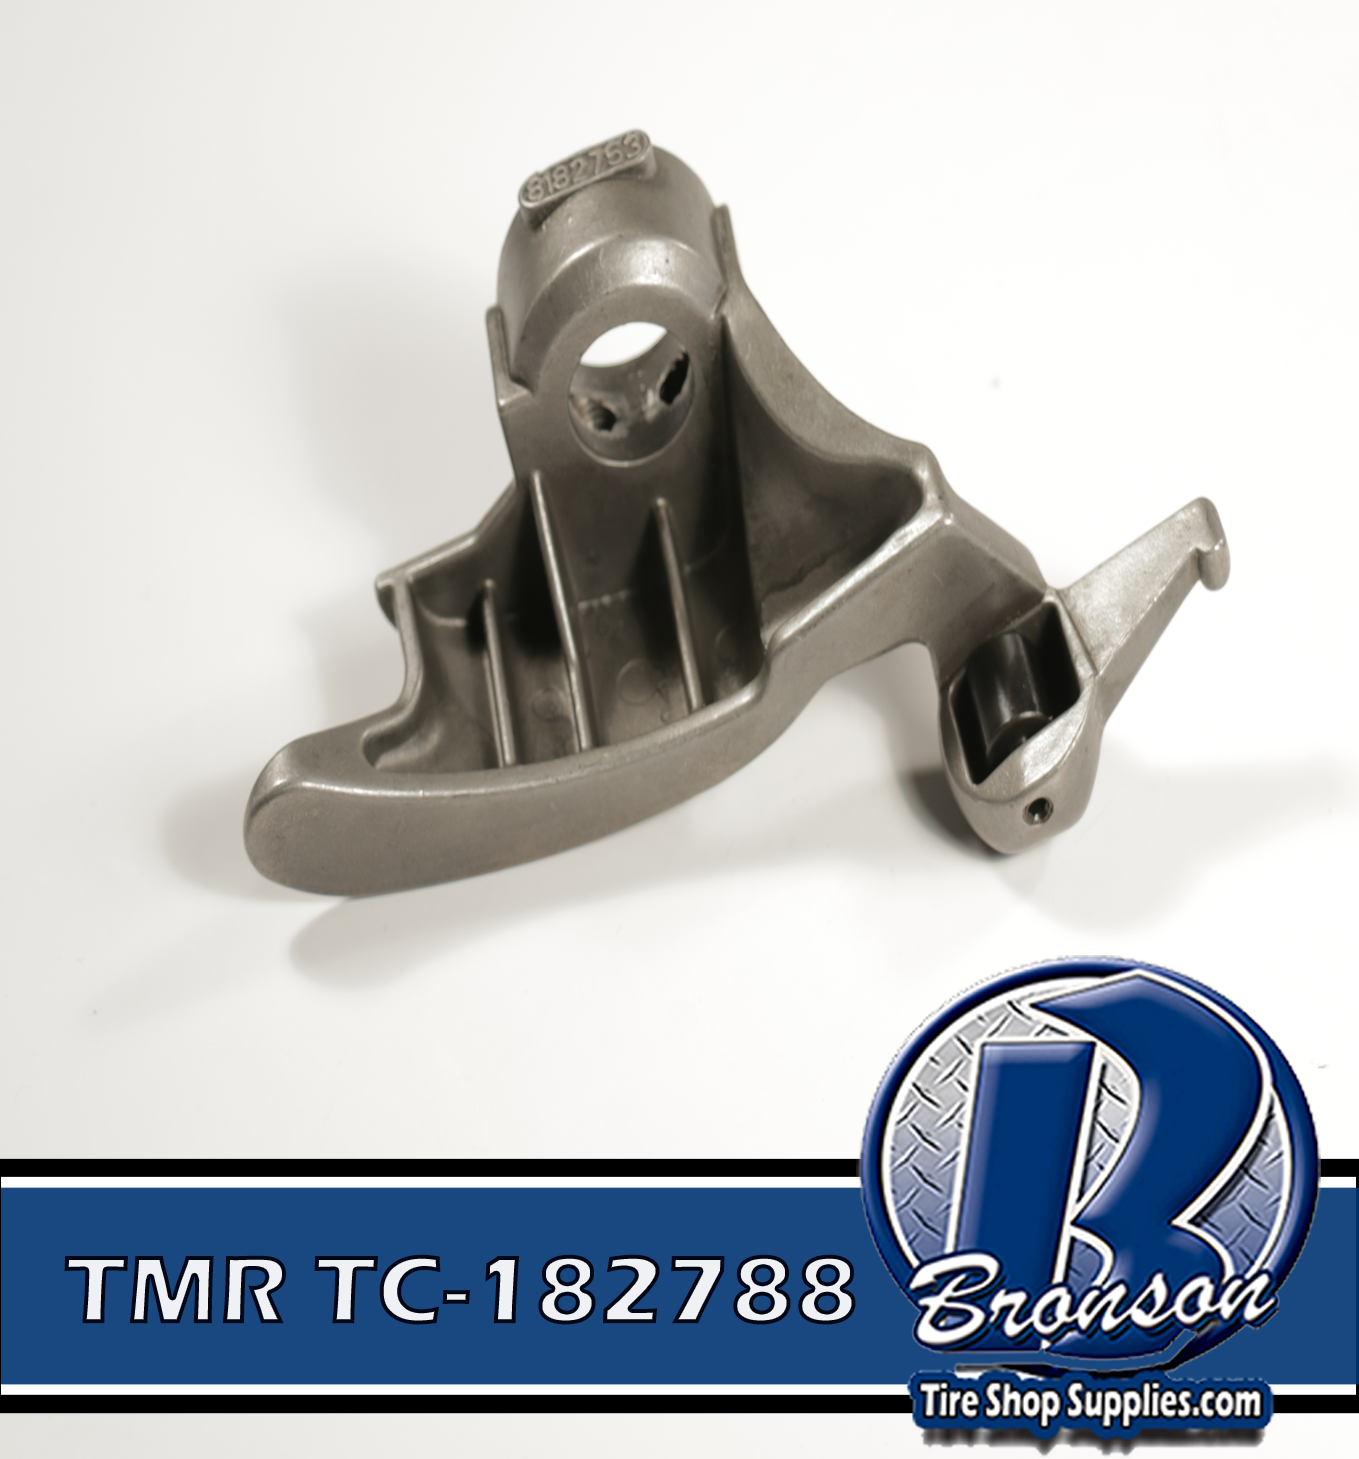 TMR TC182788 STAINLESS STEEL MOUNT/DEMOUNT HEAD WITH TAPERED HOL